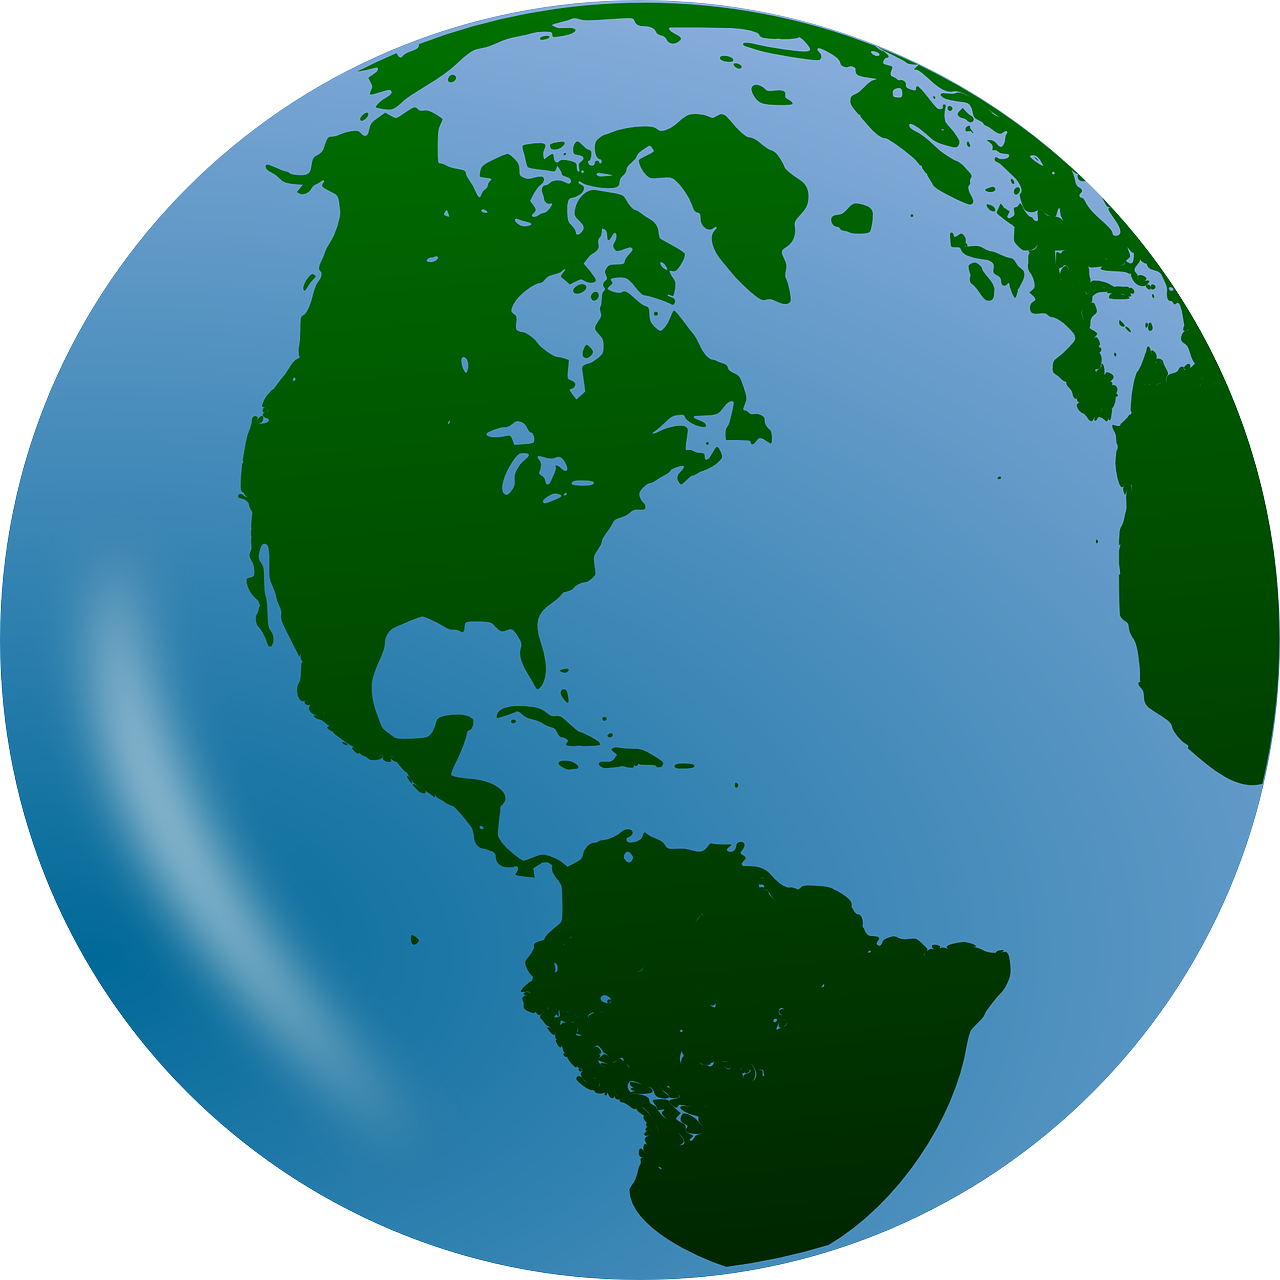 Asia markets growing brad. Europe clipart cool earth